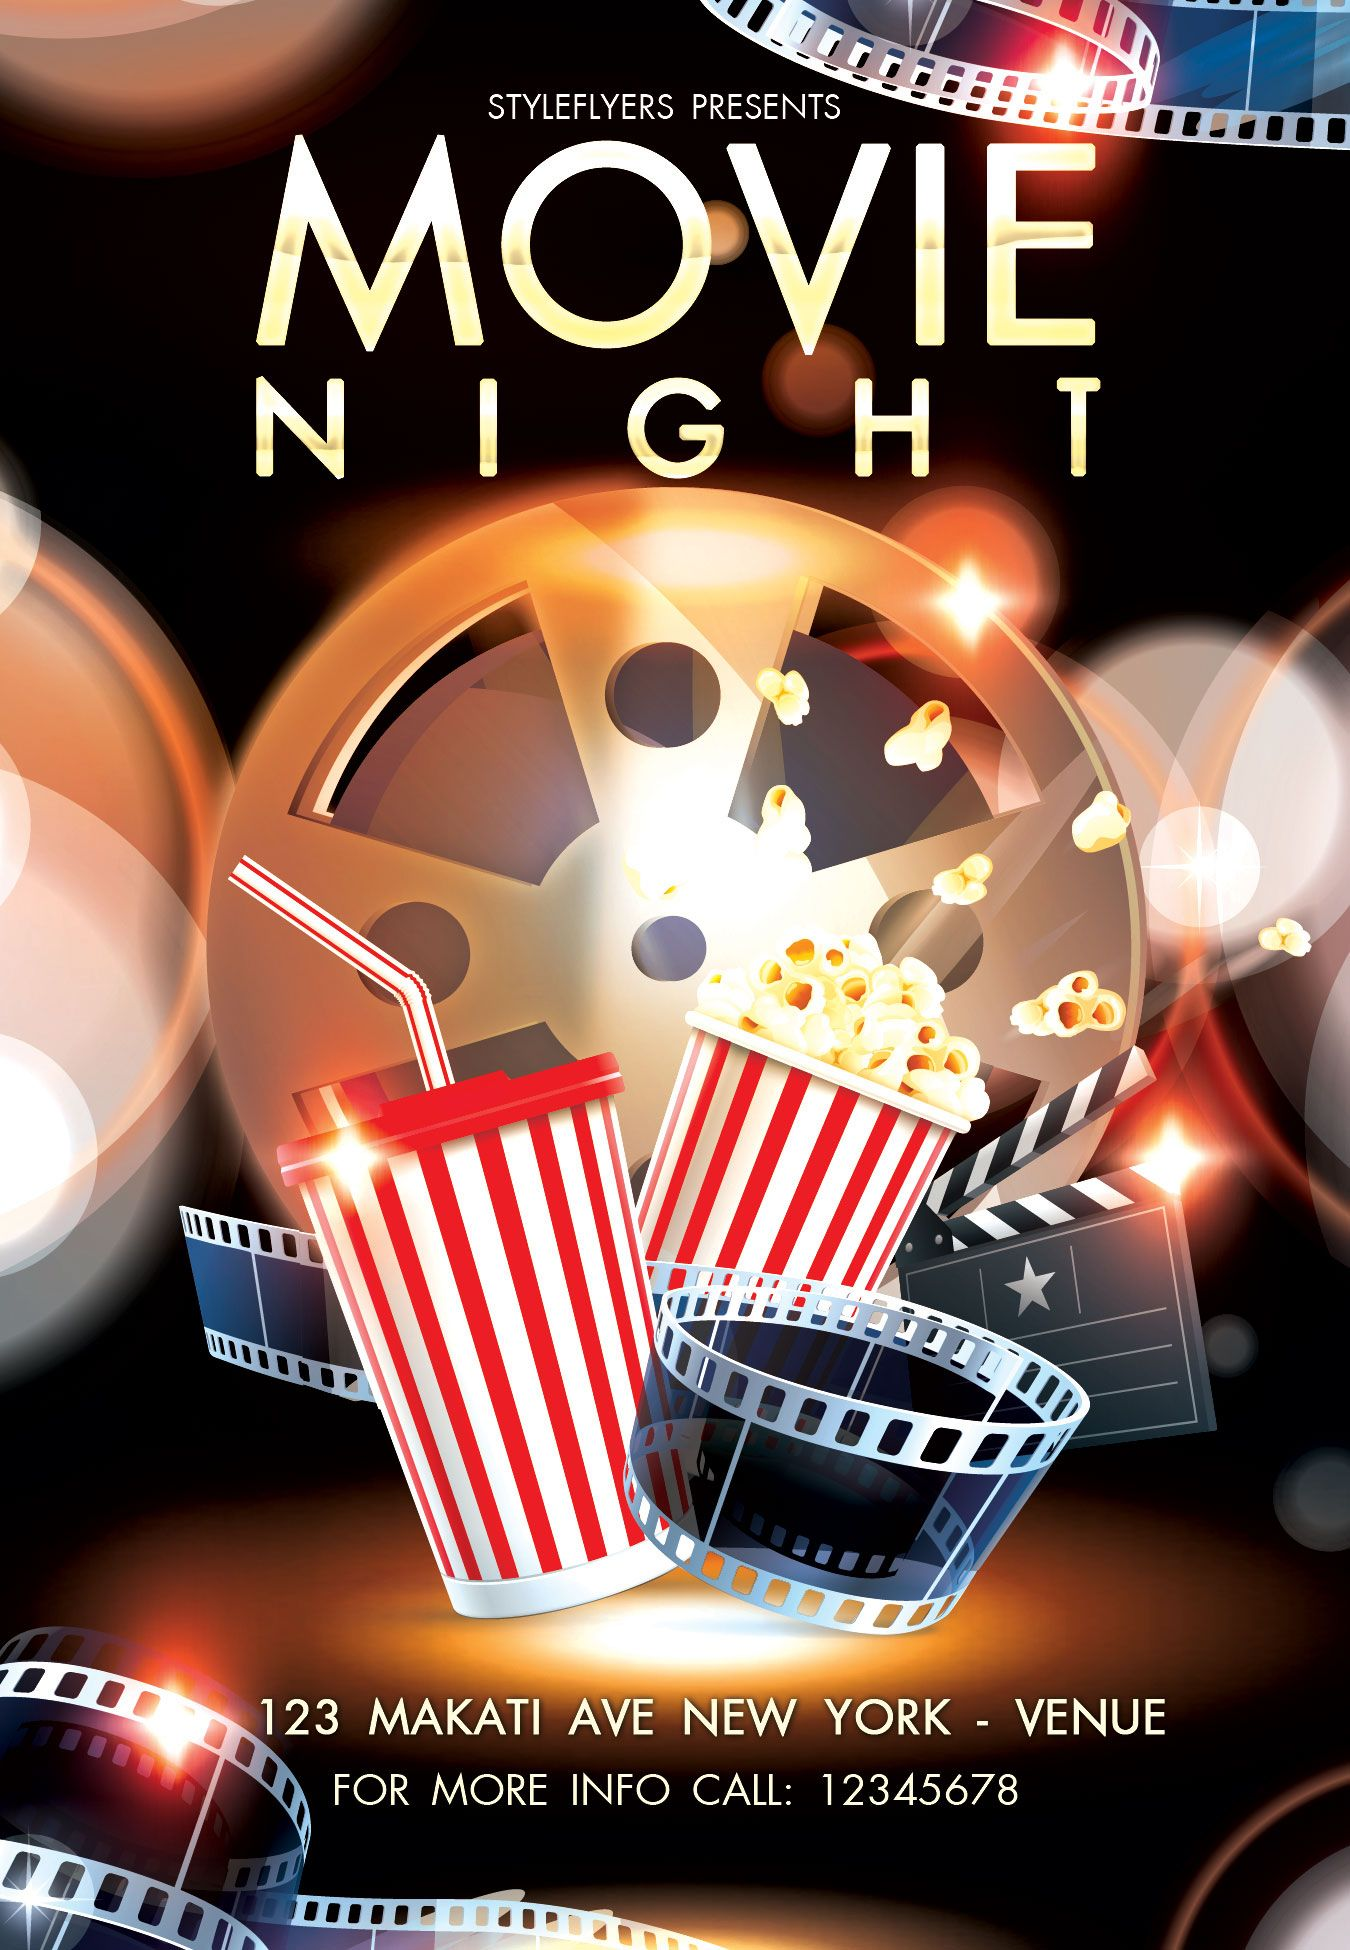 Free Movie Night Party Flyer Psd Template By Styleflyer Com Is The